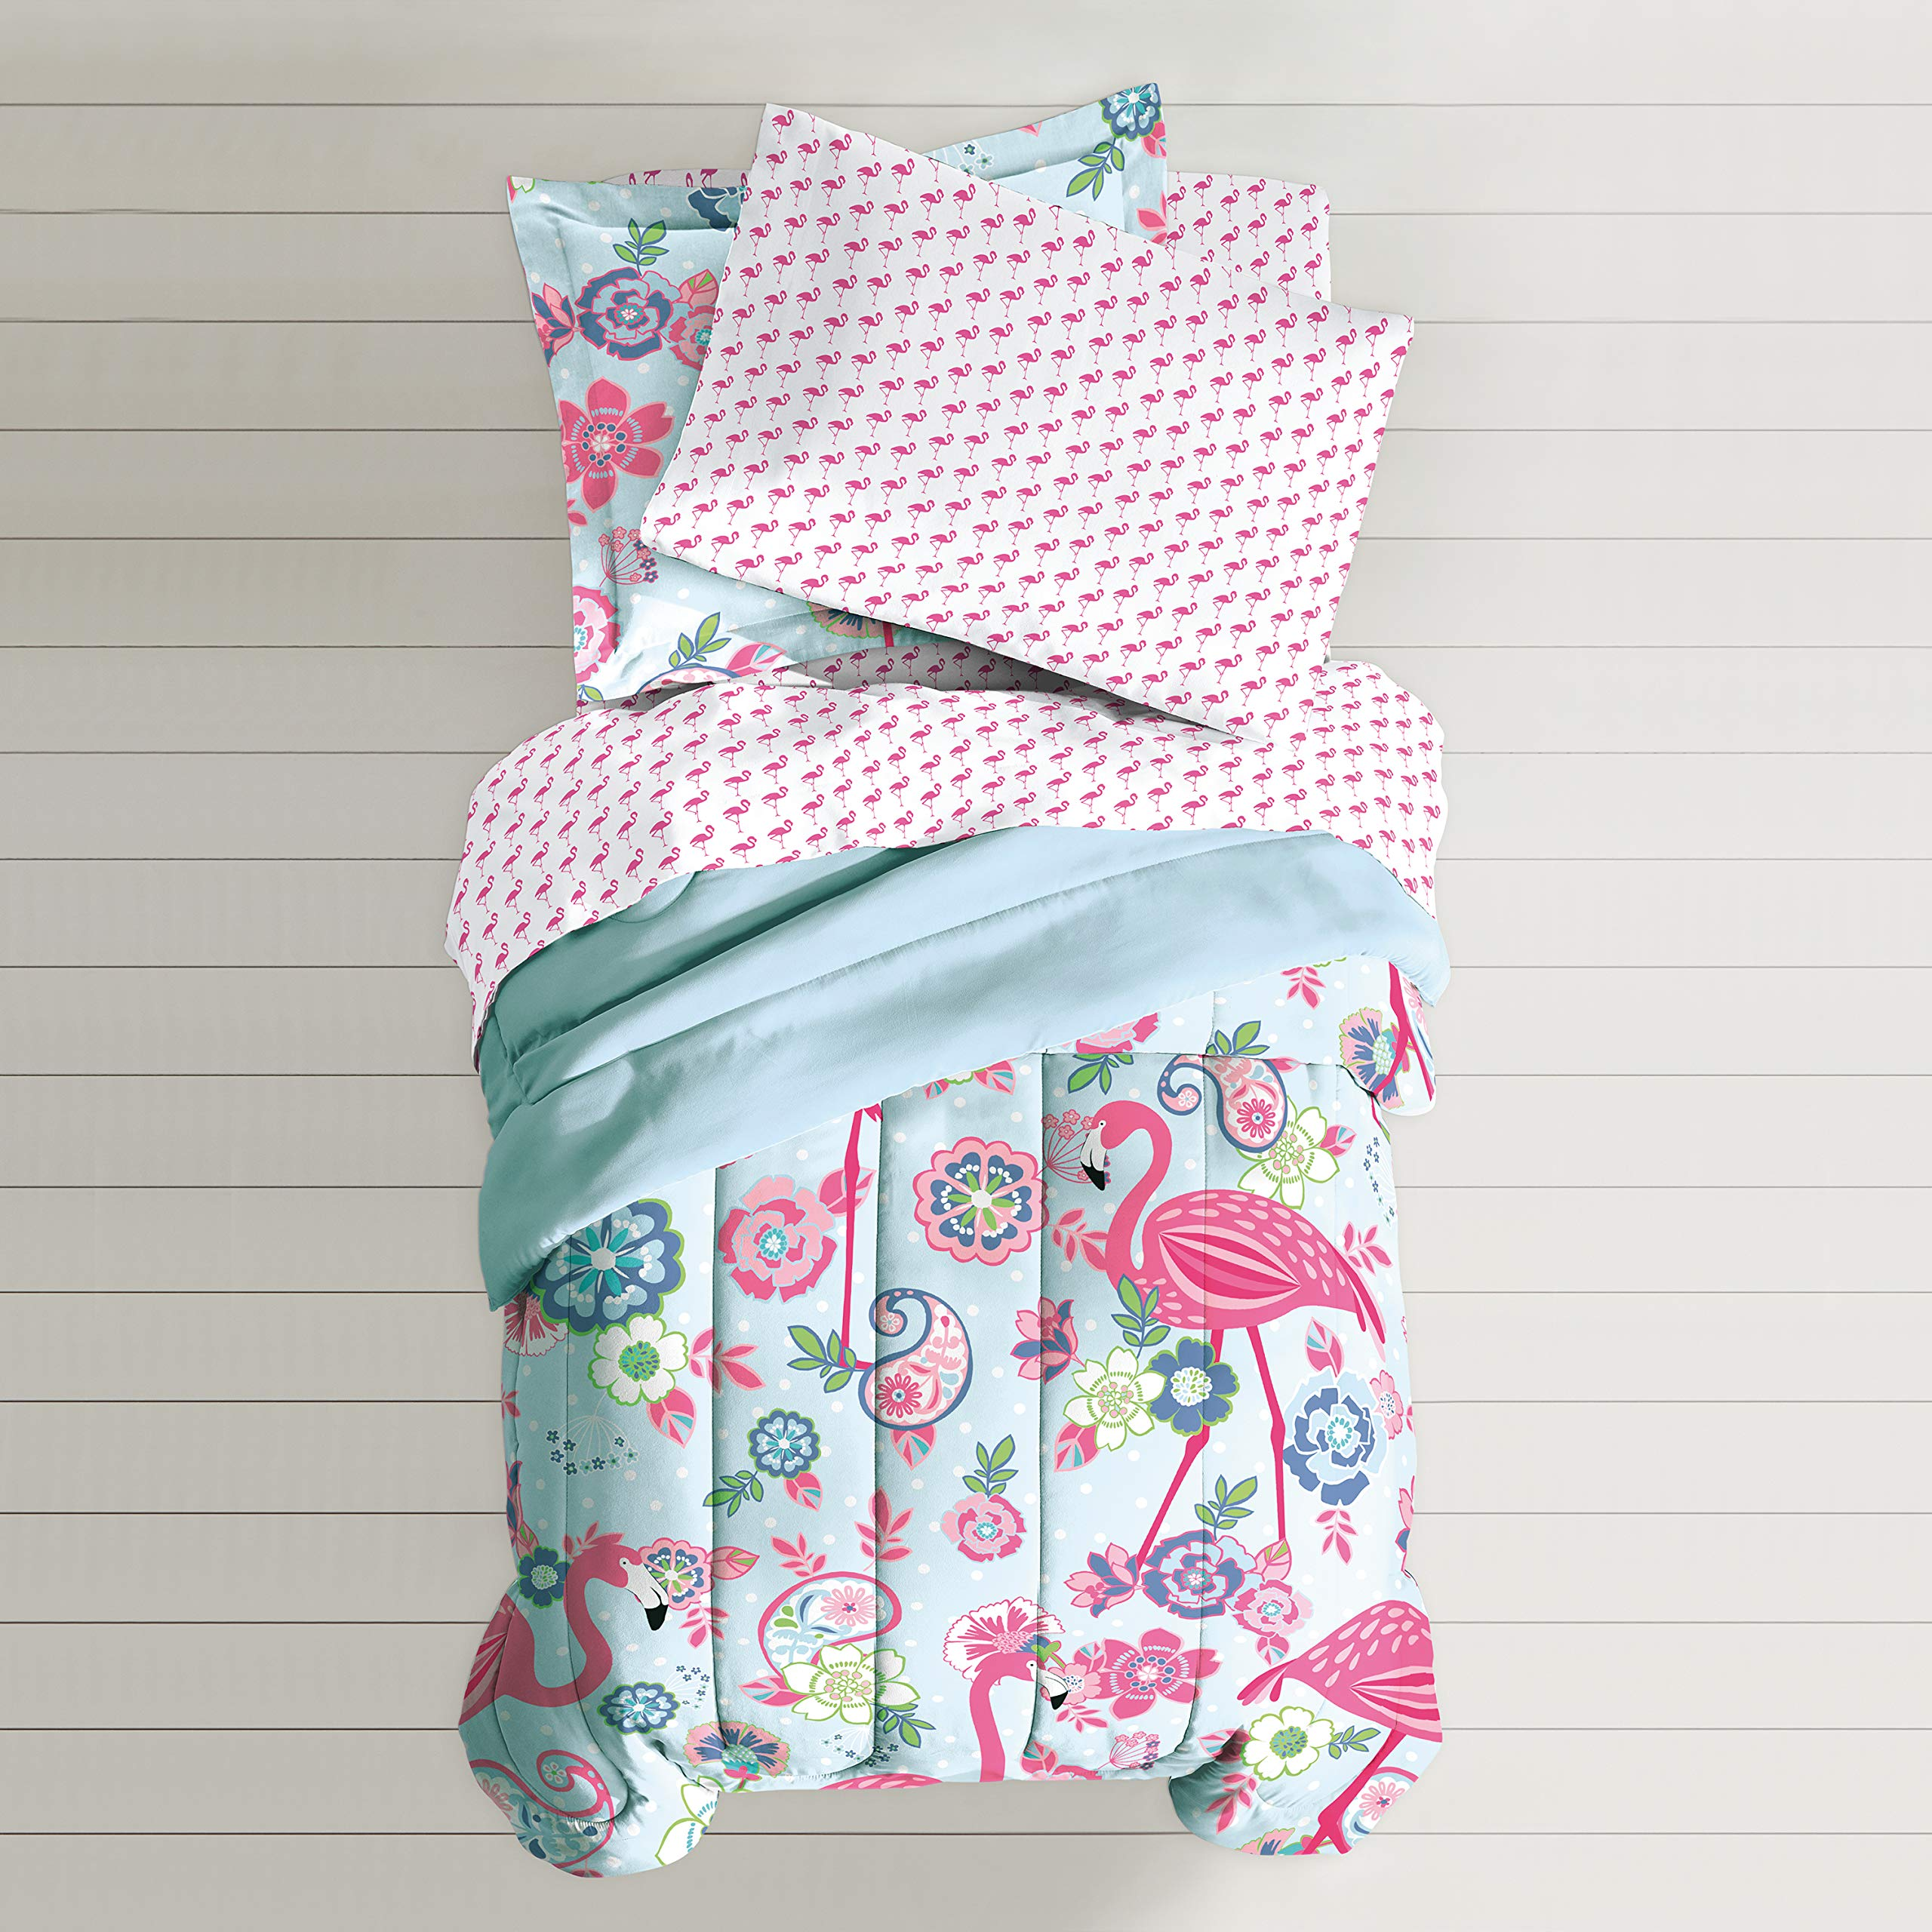 Dream Factory Flamingo Comforter Set, Pink, Twin by Dream Factory (Image #6)